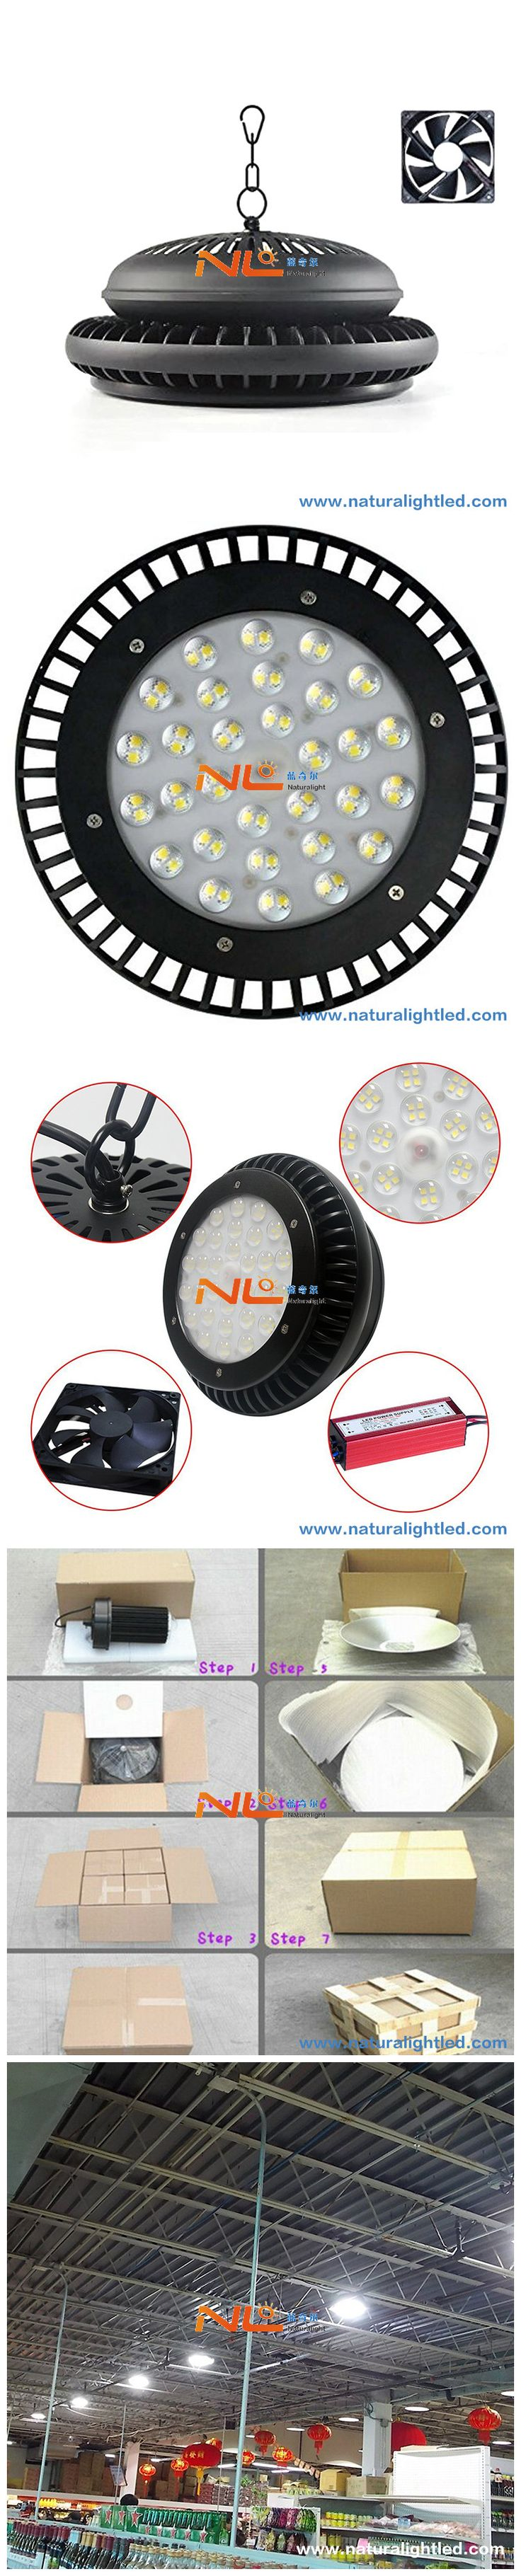 100W High Bay UFO Lights Ultra Efficient 100-130 Lumens Warehouse LED Lights Retail LED Lights Super Bright Commercial Lighting